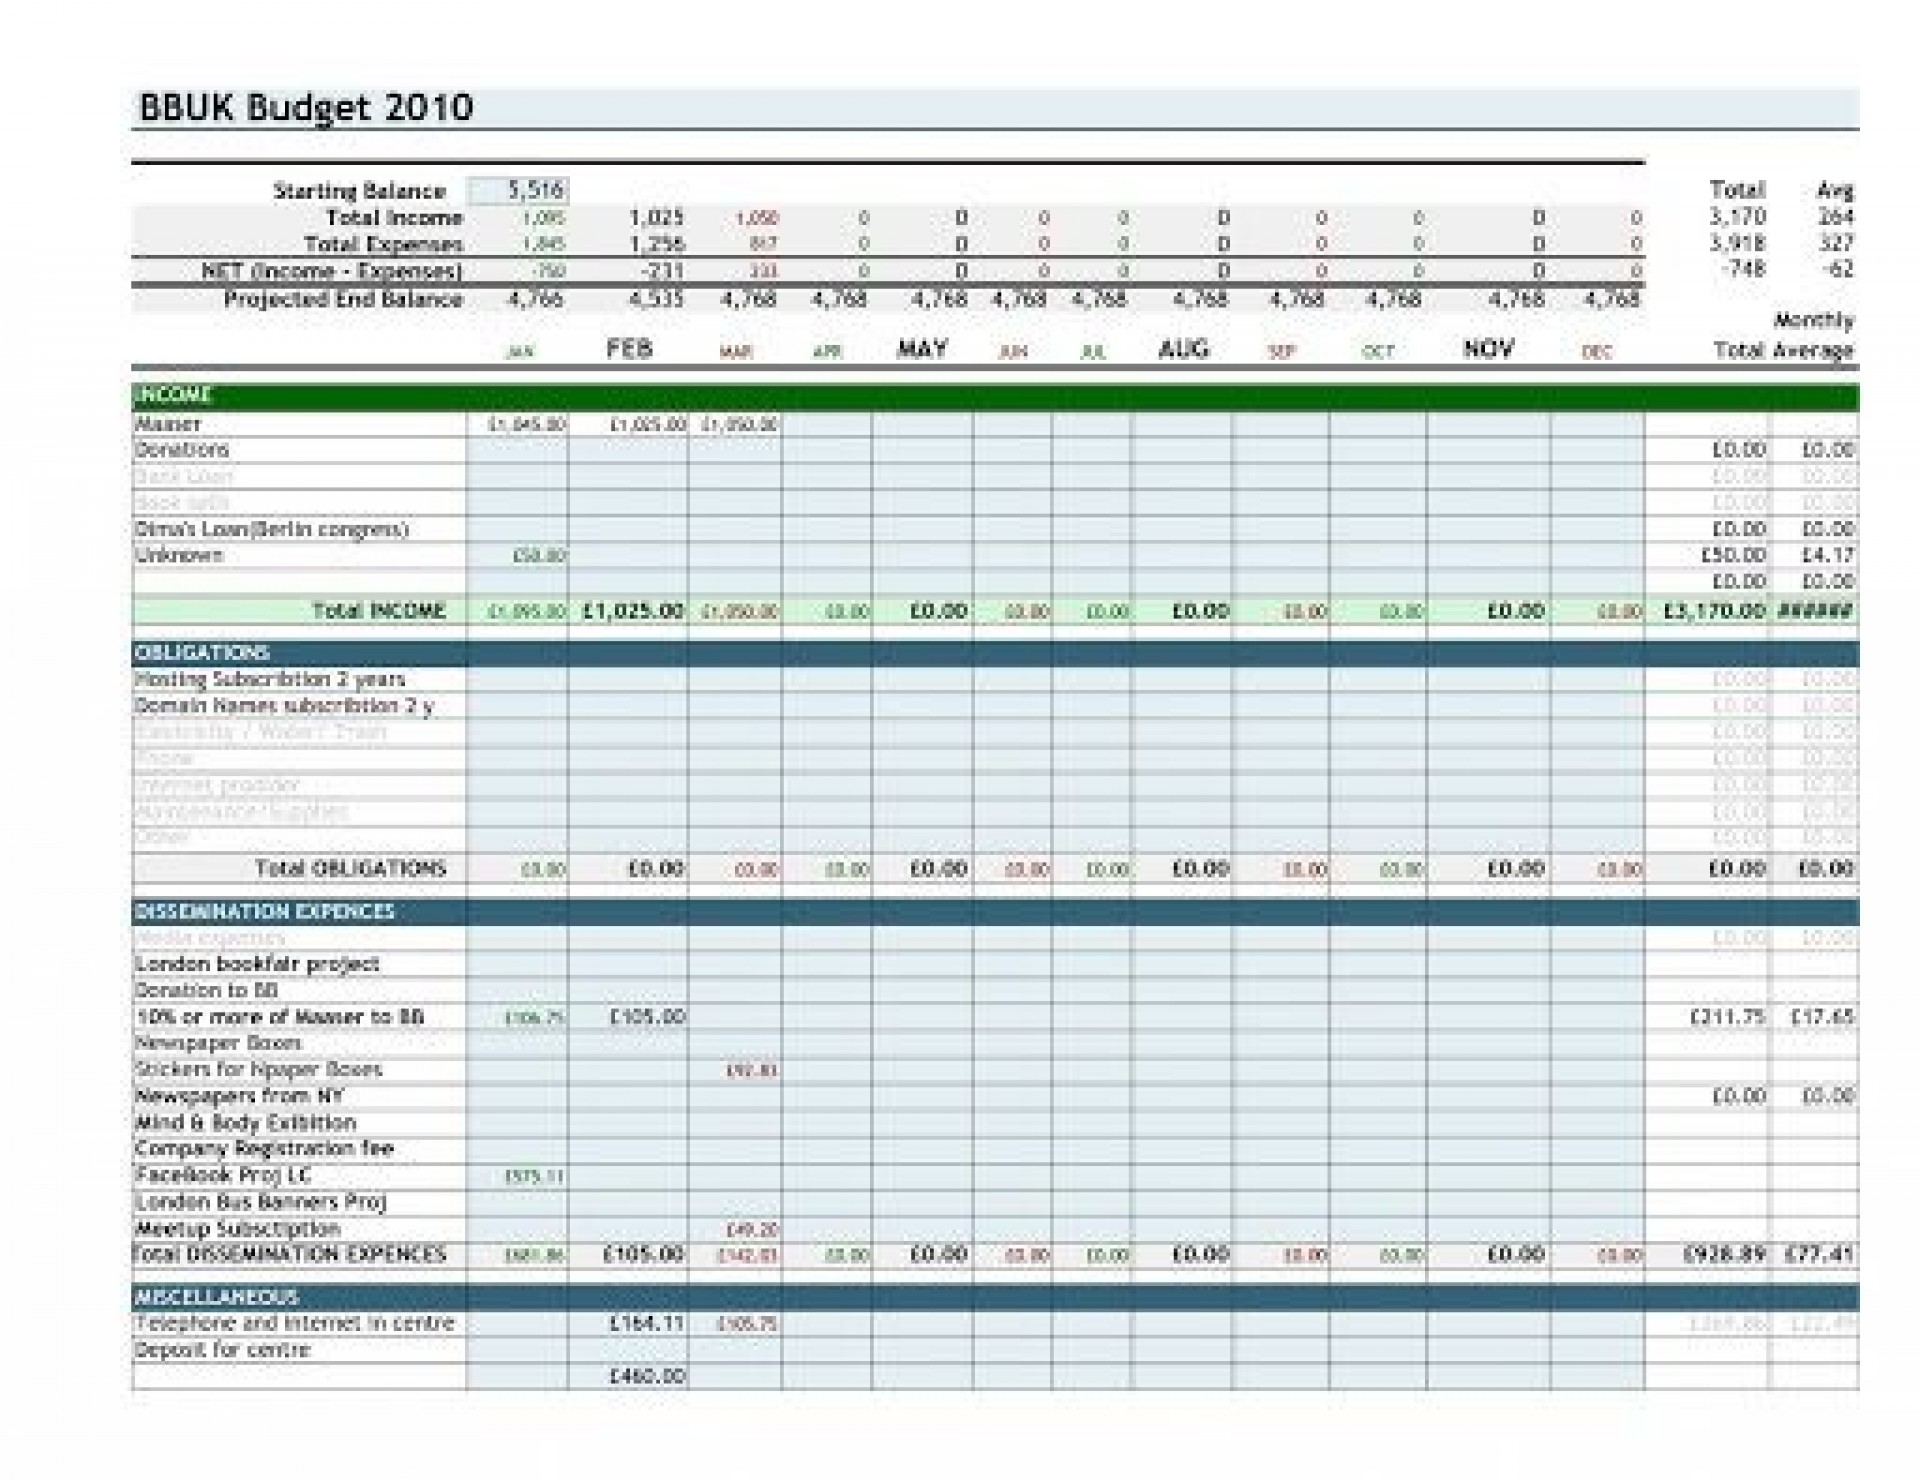 007 Unusual Personal Financial Template Excel High Resolution  Statement Budget India Expense Report1920